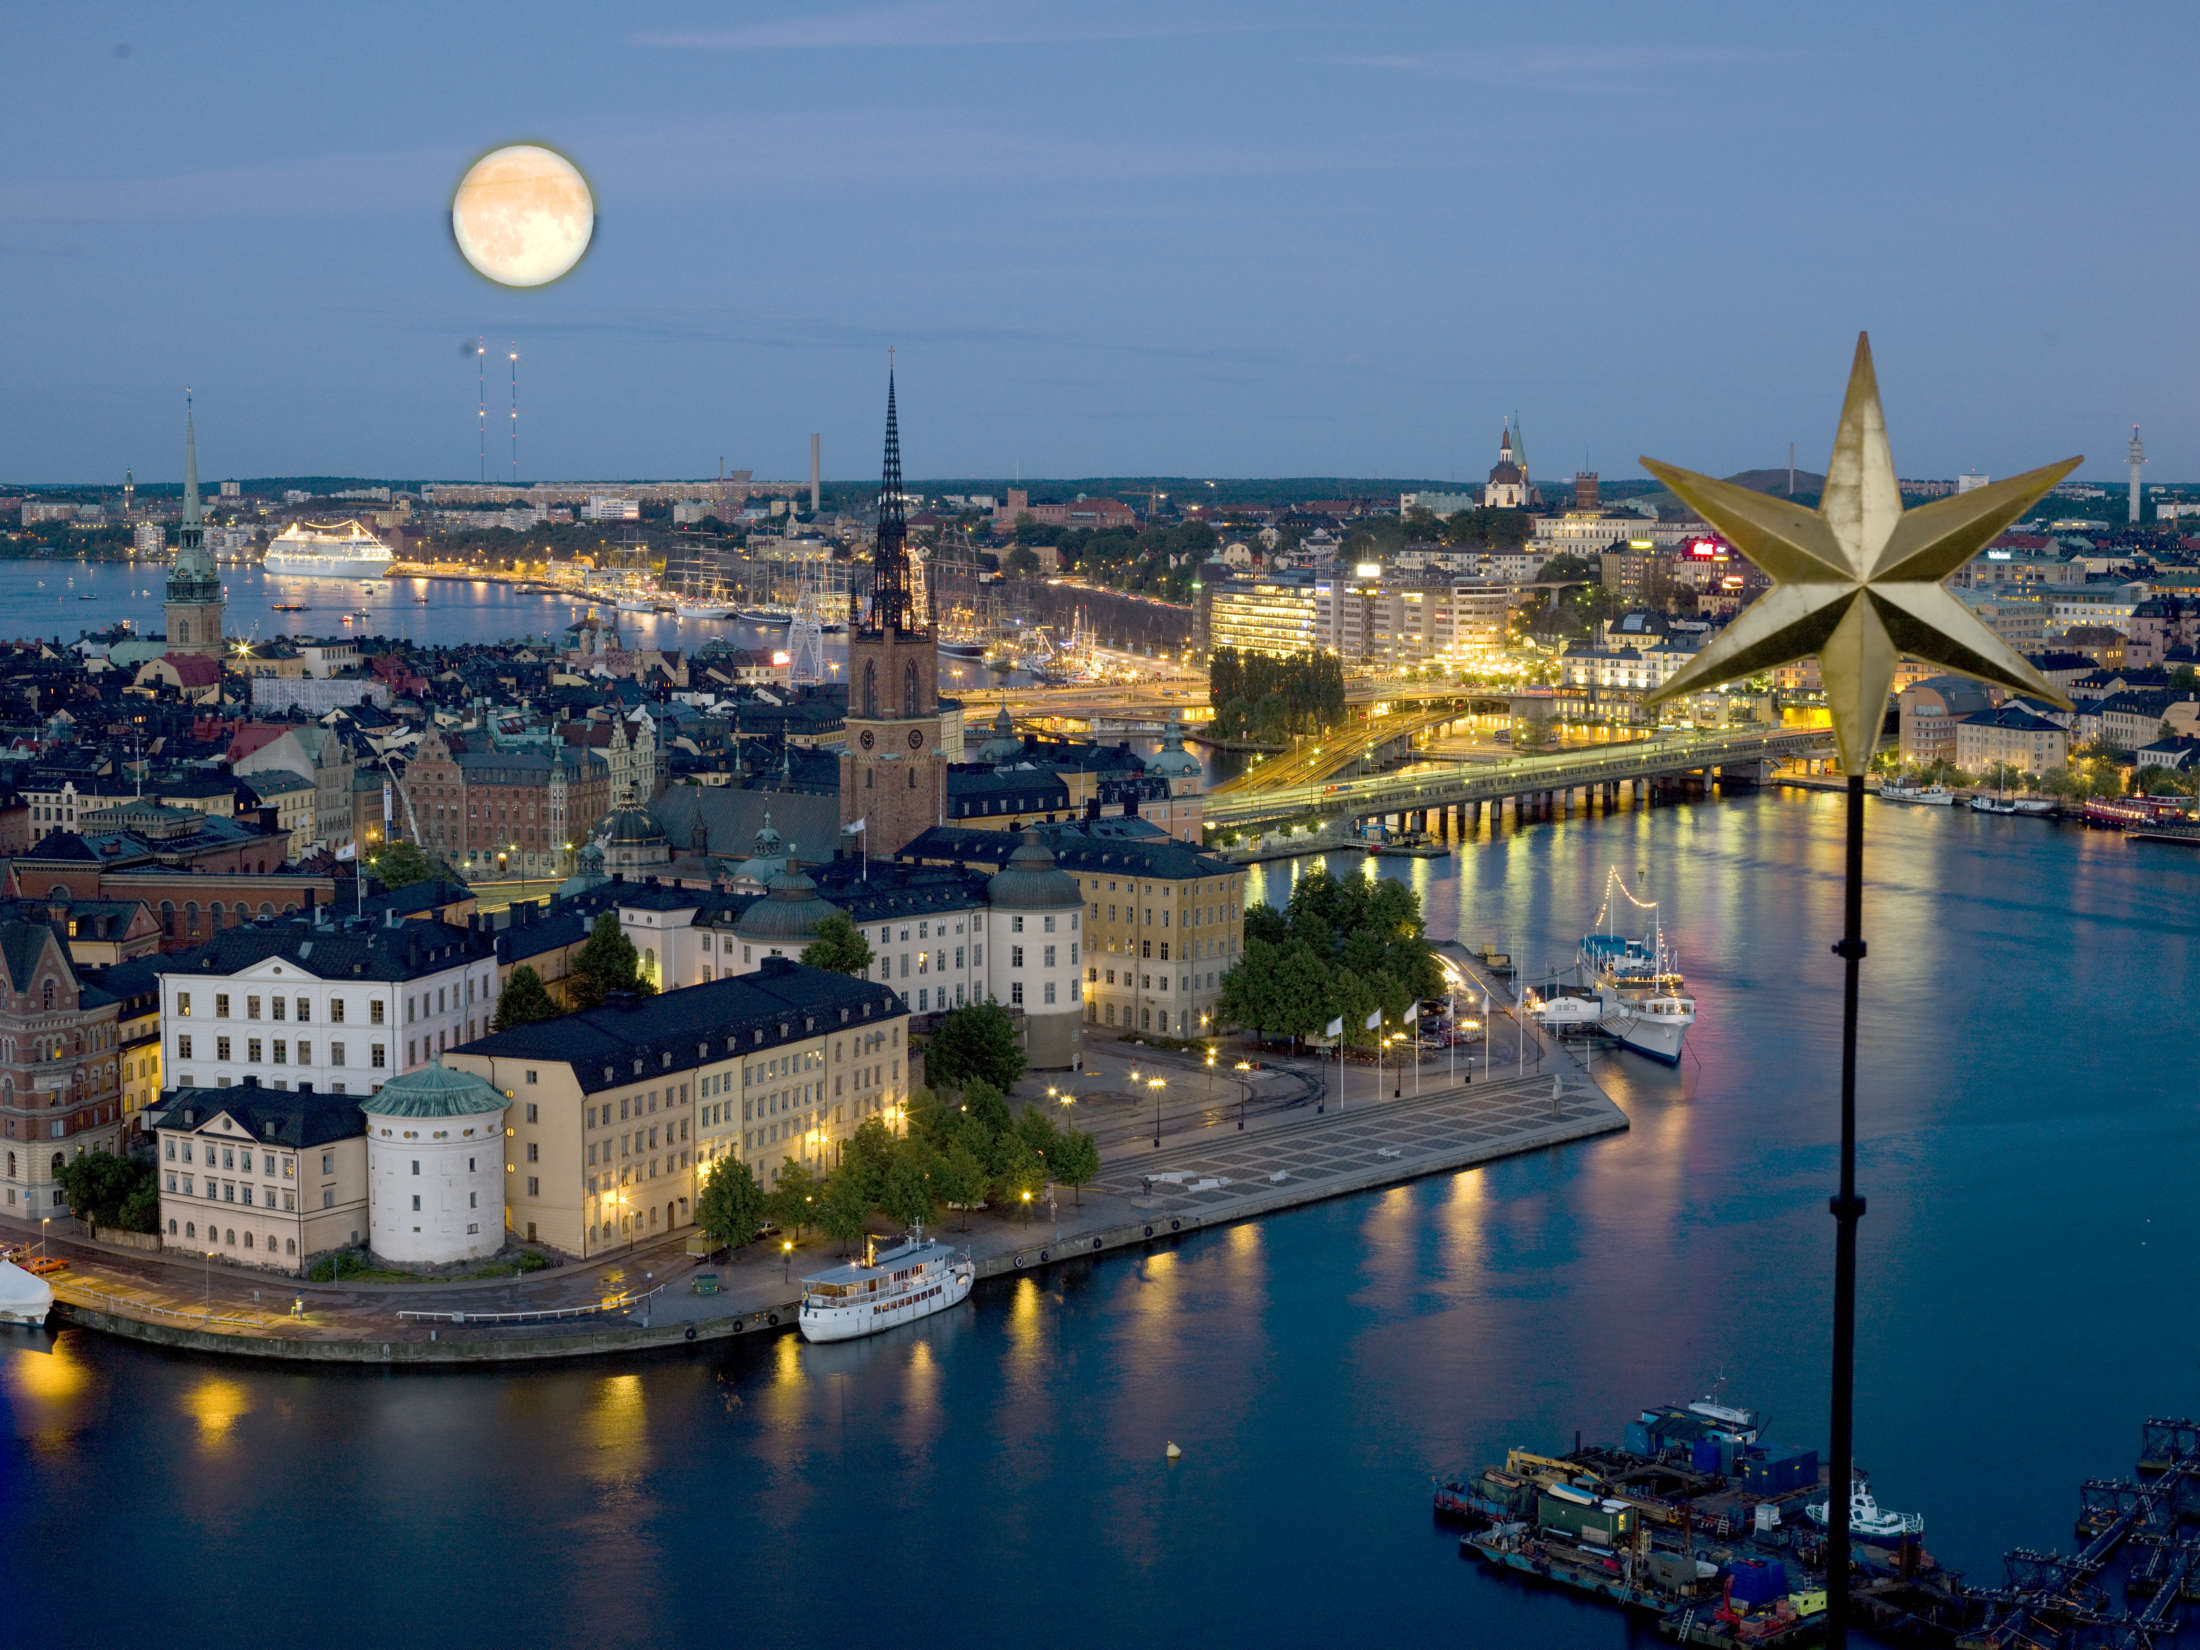 Night at  Riddarholmen:Why You Should De-Register That Work Permit